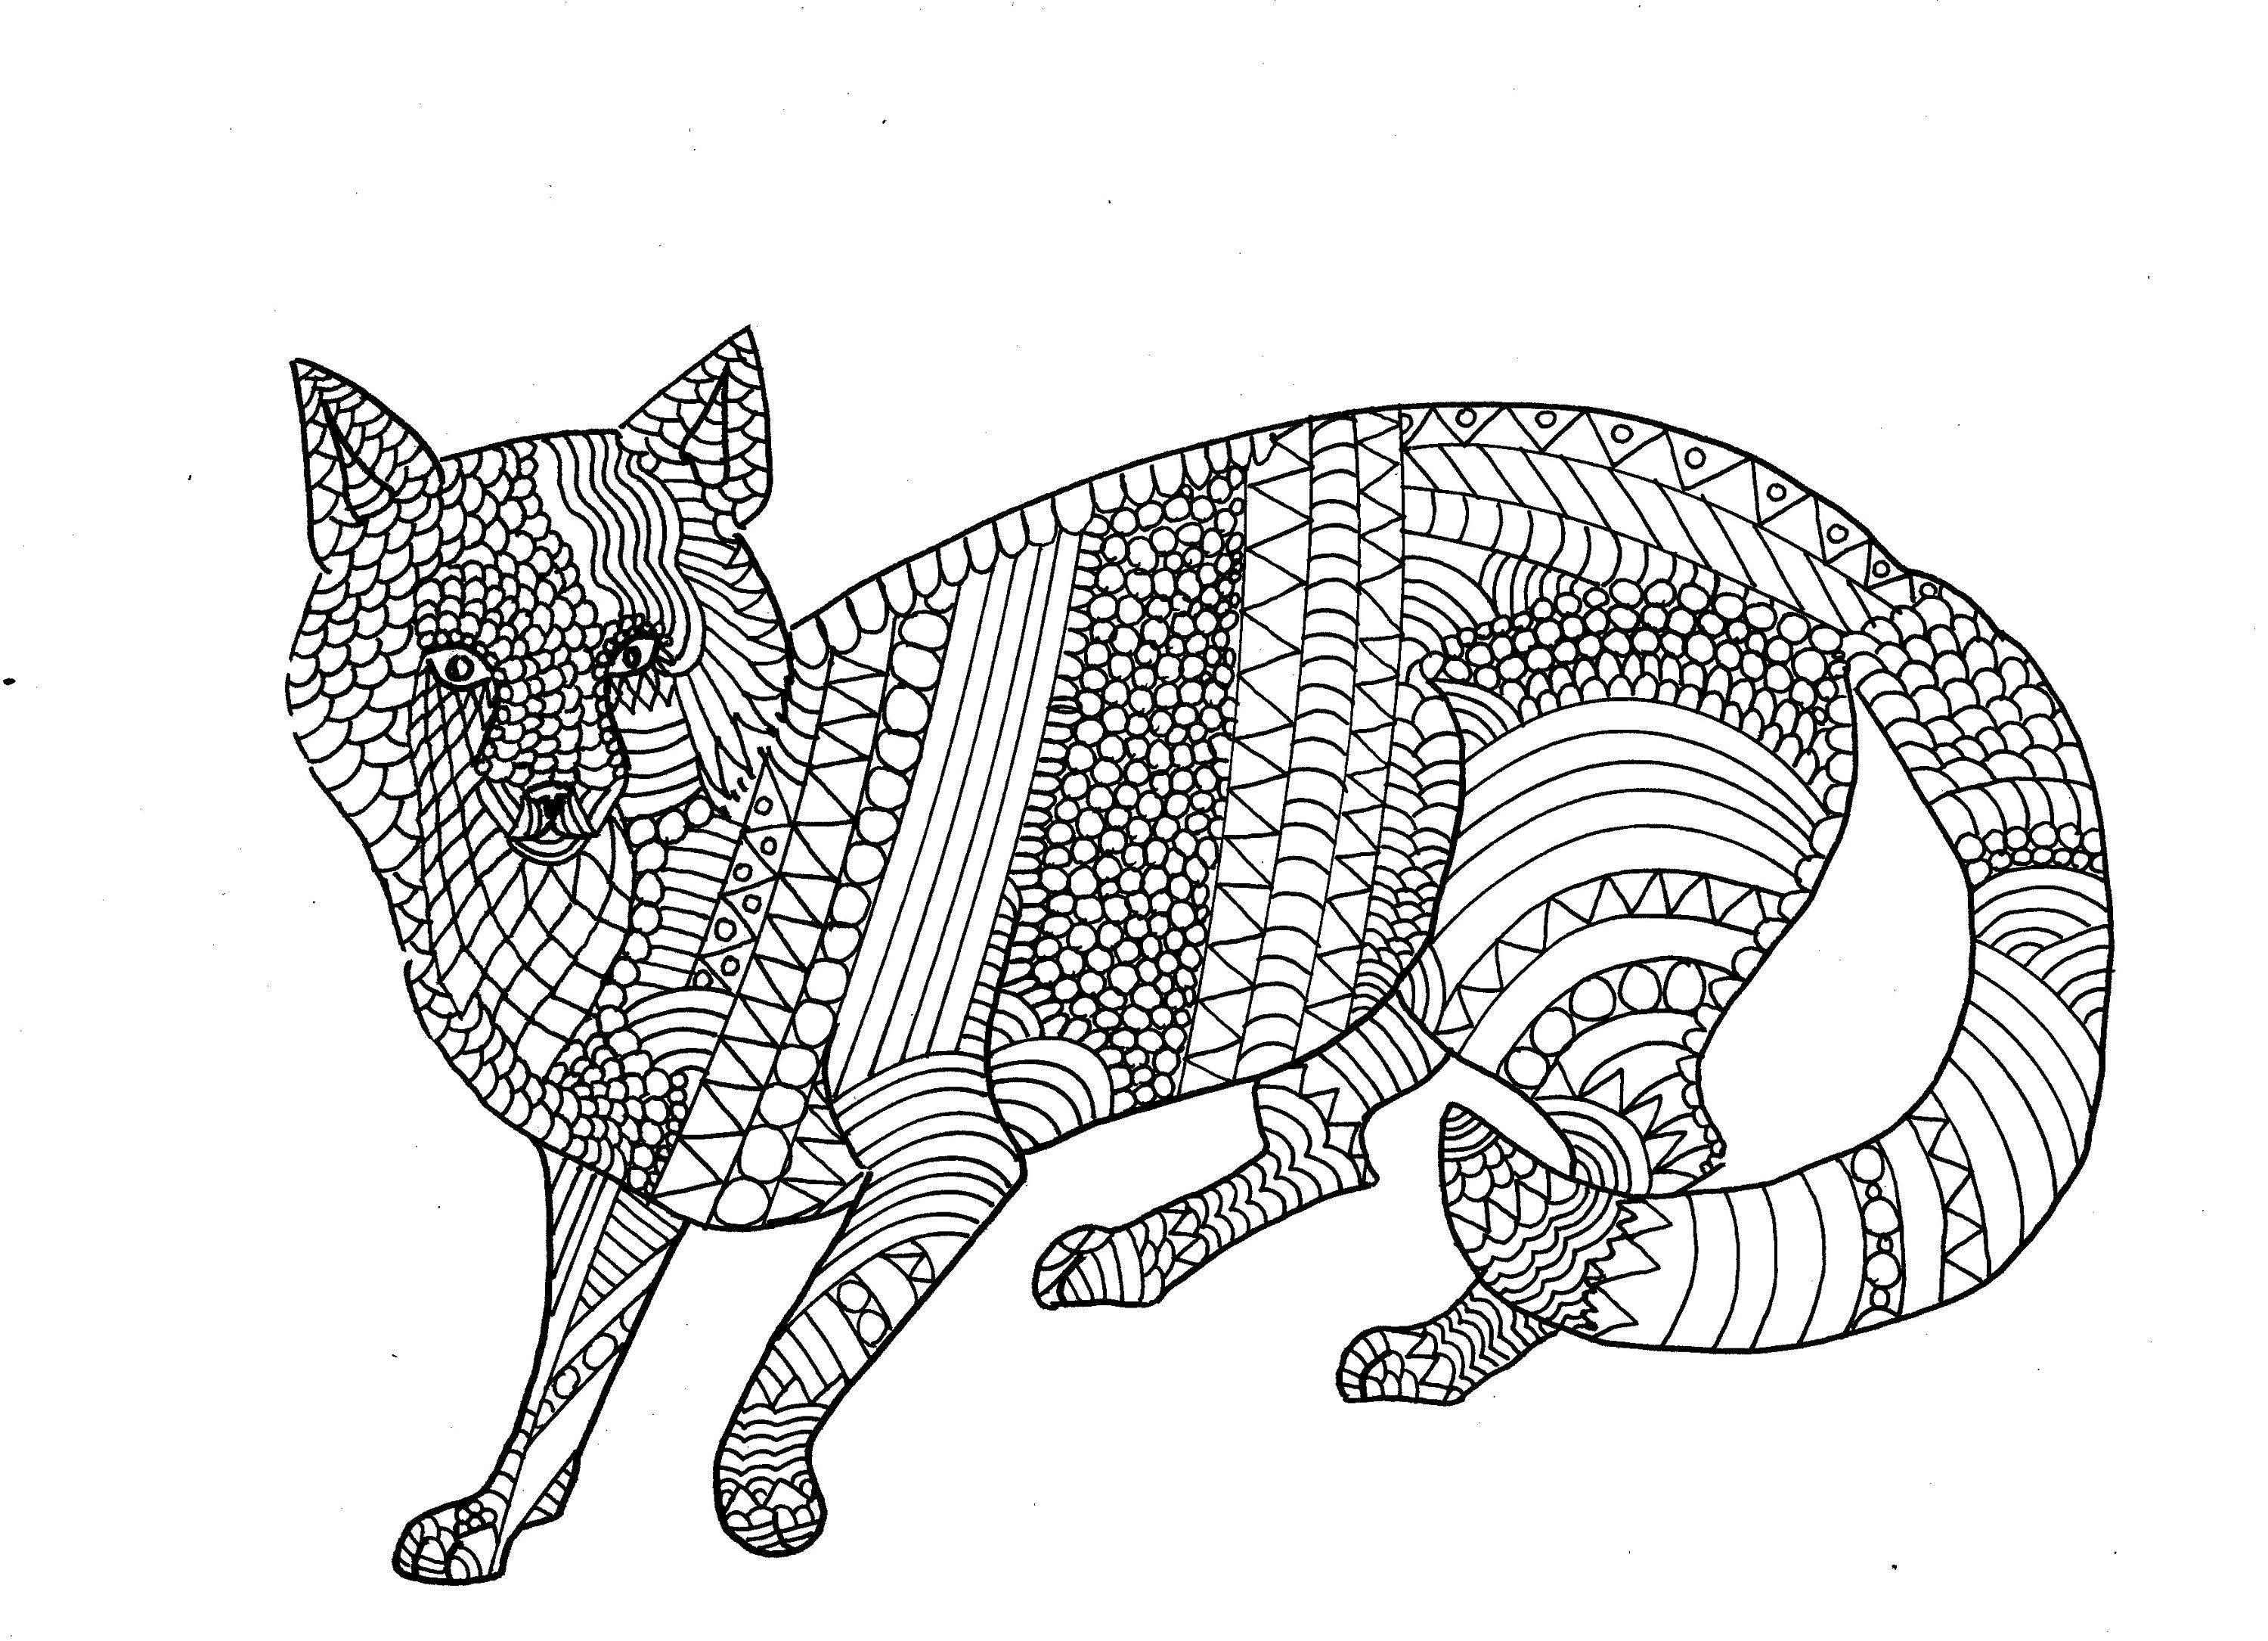 Red Fox Colouring Page Adult Colouring Page Digital Product